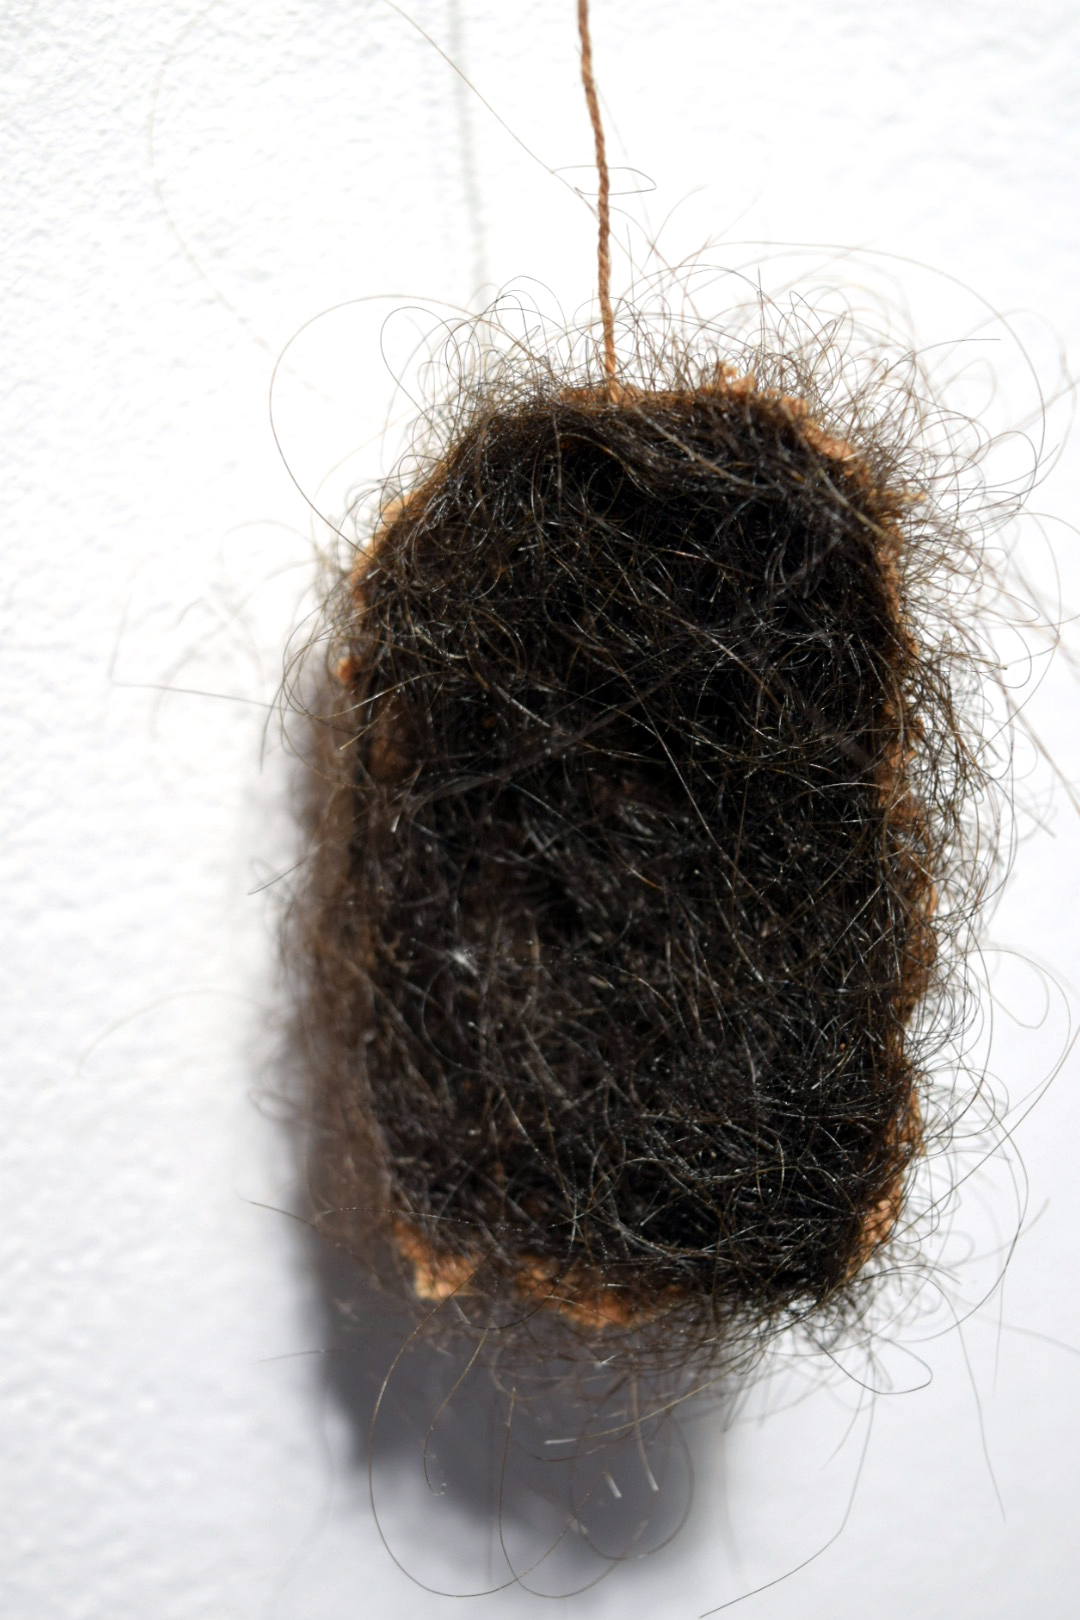 Close up image of a tea bag stitched and covered entirely with dark brown hair. The hair is matted into the fabric of the teabag. The very bottom left corner of the tea bag is visible to the viewer and is a light tan color.